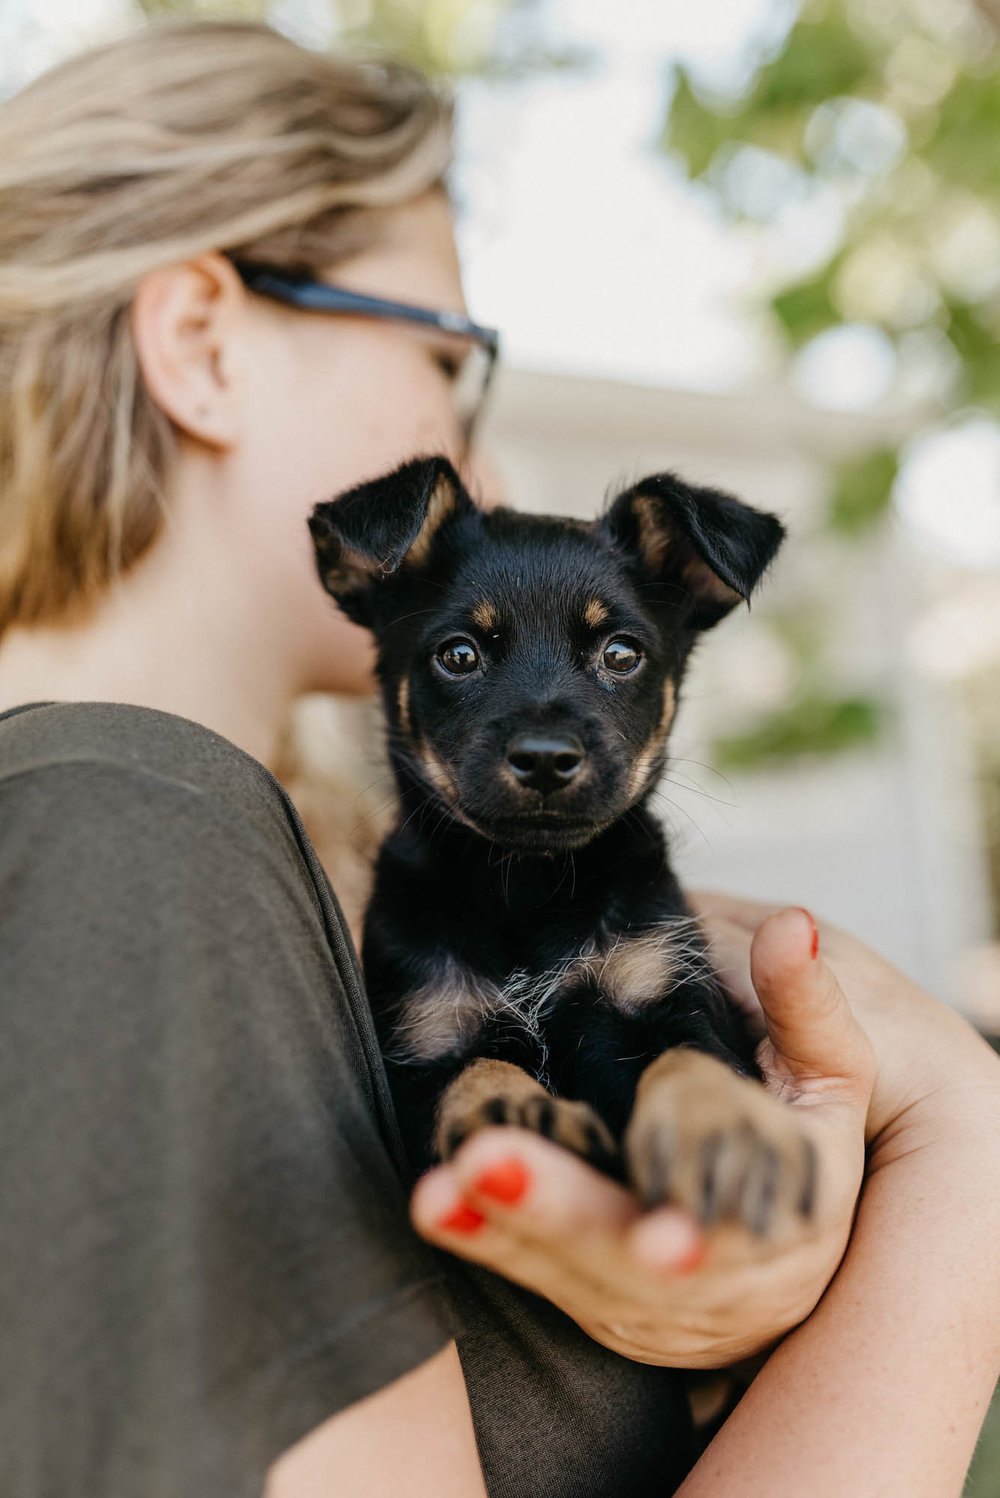 4. Am I able to Have a Pet Where I live? do i plan to move?  - Many rental communities throughout the Bay Area do not allow pets or have animal breed, size, age restrictions.Most landlords require an additional pet deposit. If you move in the future, your choice of housing will probably be restricted.